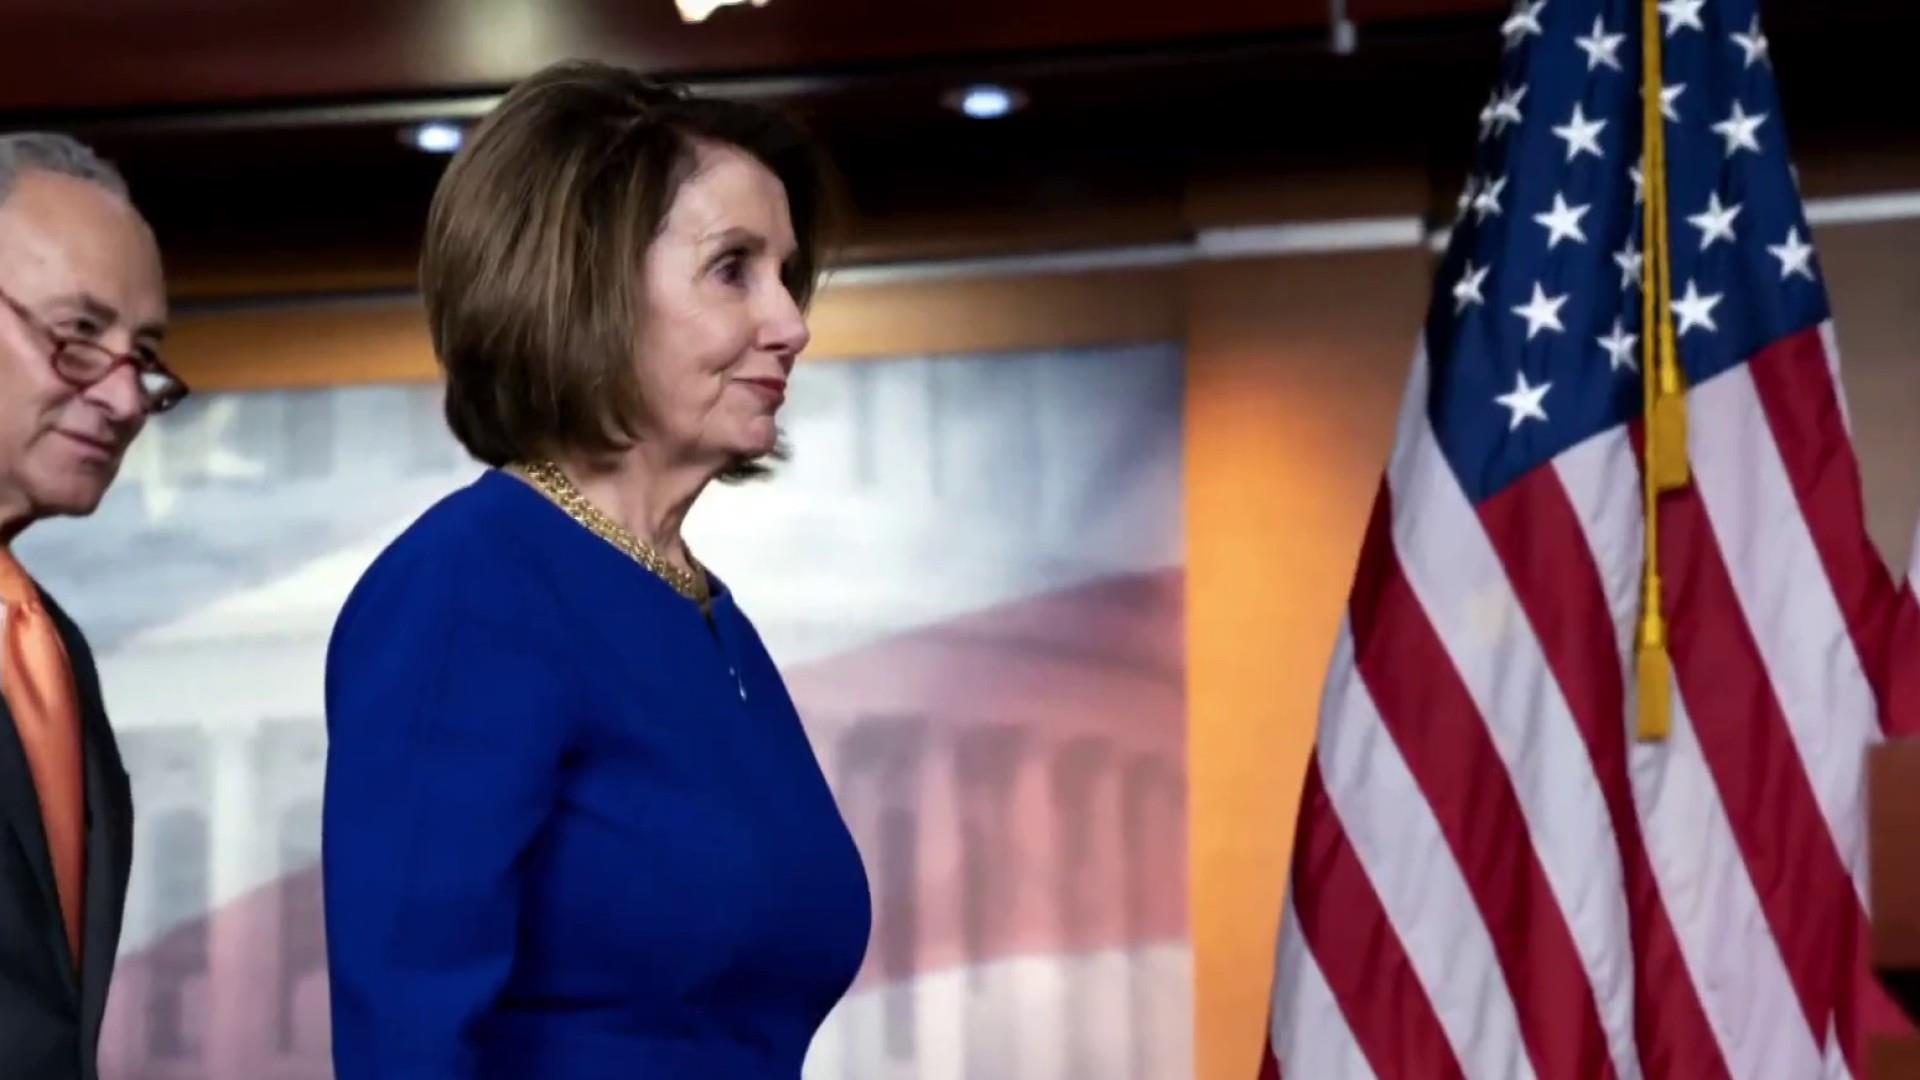 Trump's attacks on Pelosi similar to GOP conspiracy theories on Clinton